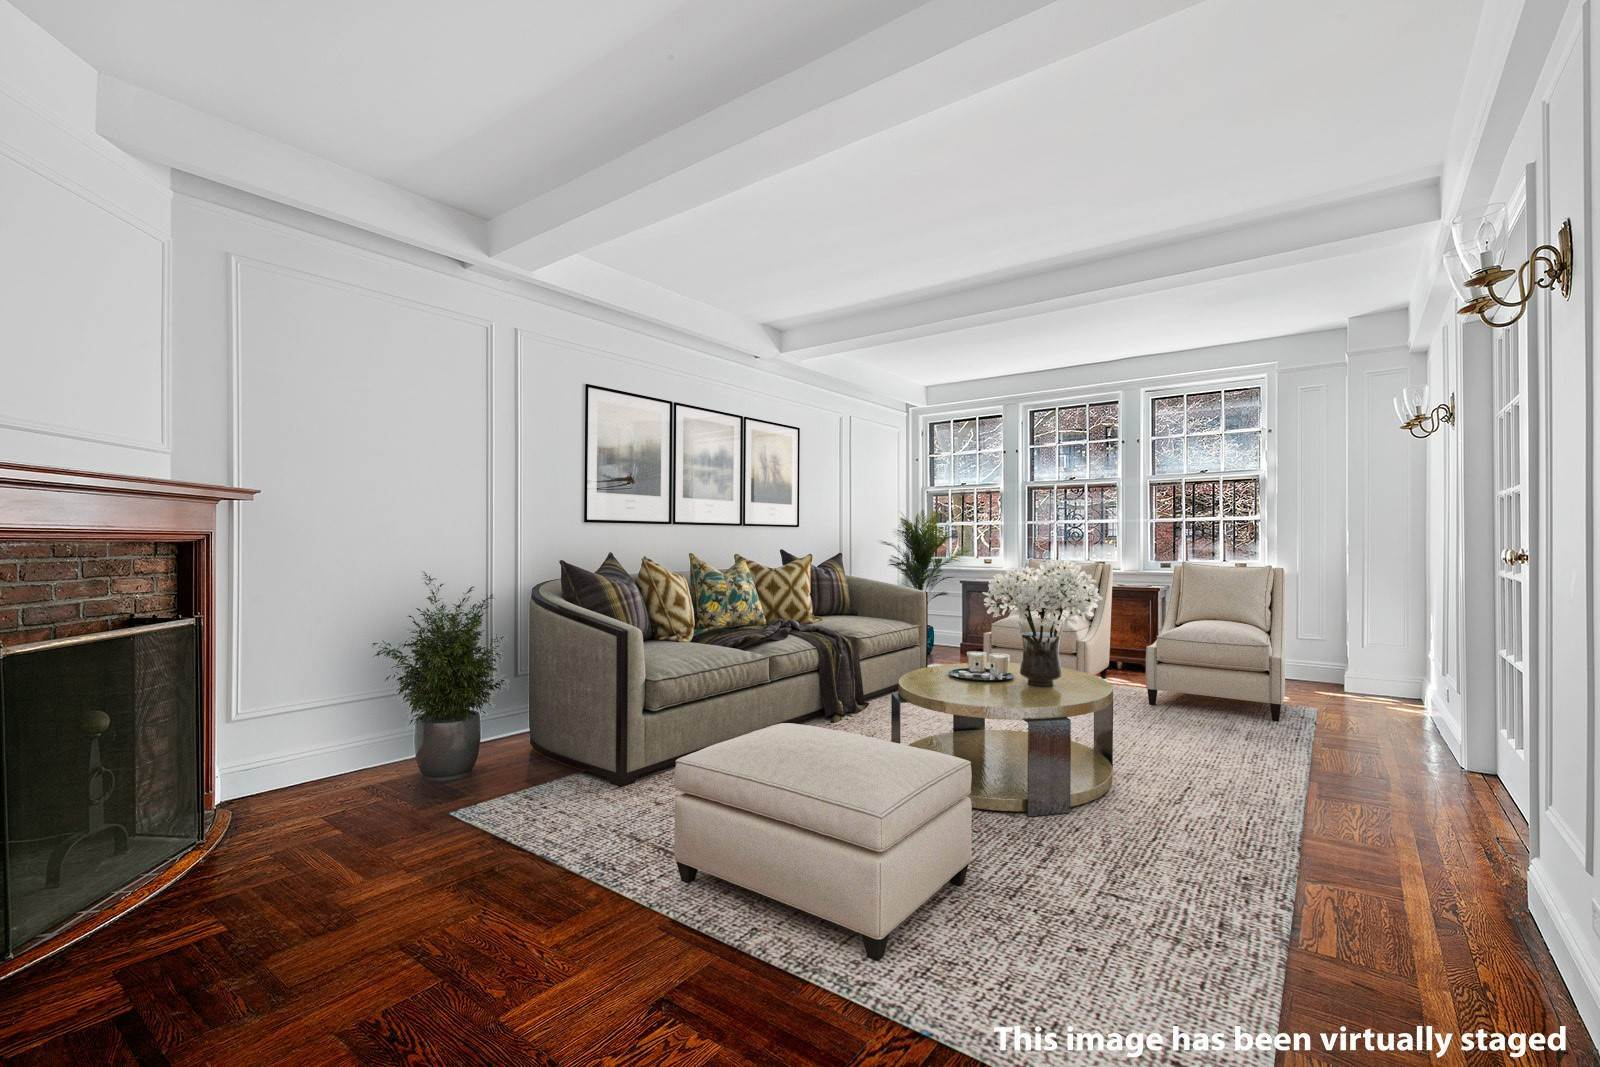 Co-op property for Sale at 24 Monroe Place, 2-A Brooklyn, New York,11201 United States